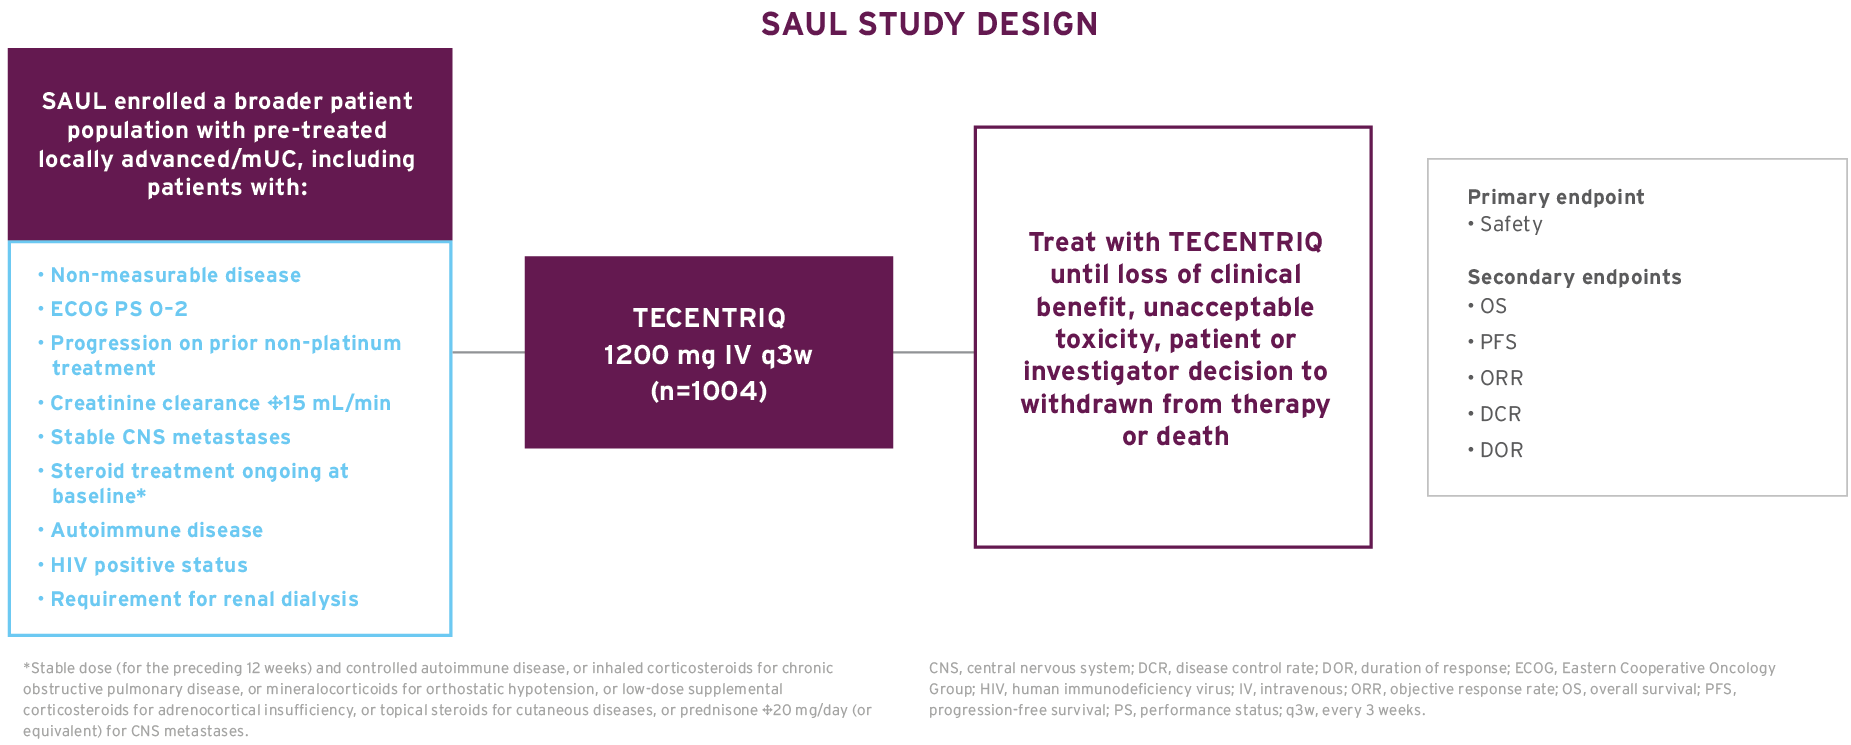 The study design of SAUL, a Phase 3b safety trial in pre-treated mUC patients.